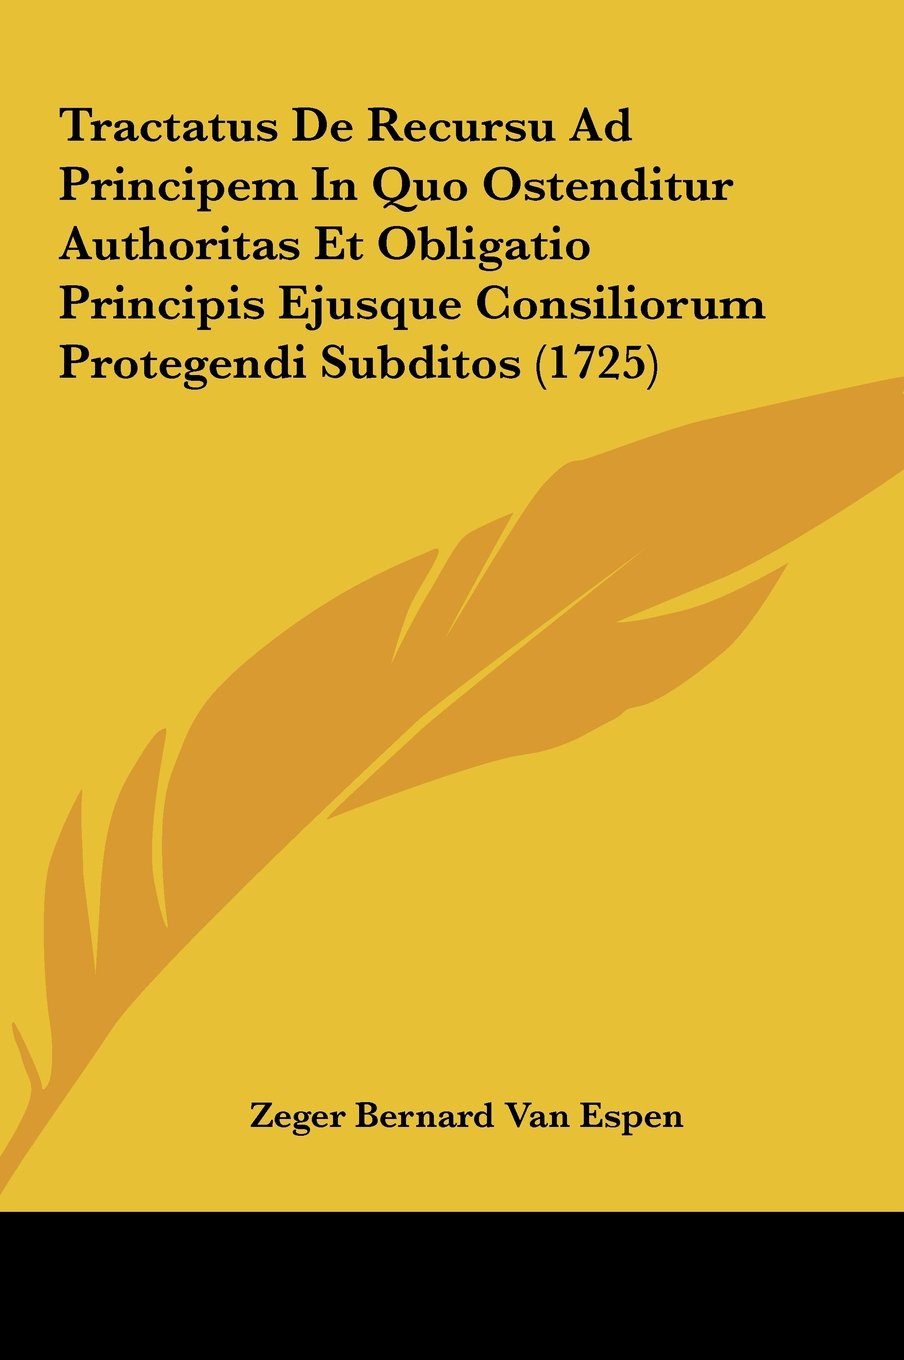 Download Tractatus De Recursu Ad Principem In Quo Ostenditur Authoritas Et Obligatio Principis Ejusque Consiliorum Protegendi Subditos (1725) (Latin Edition) pdf